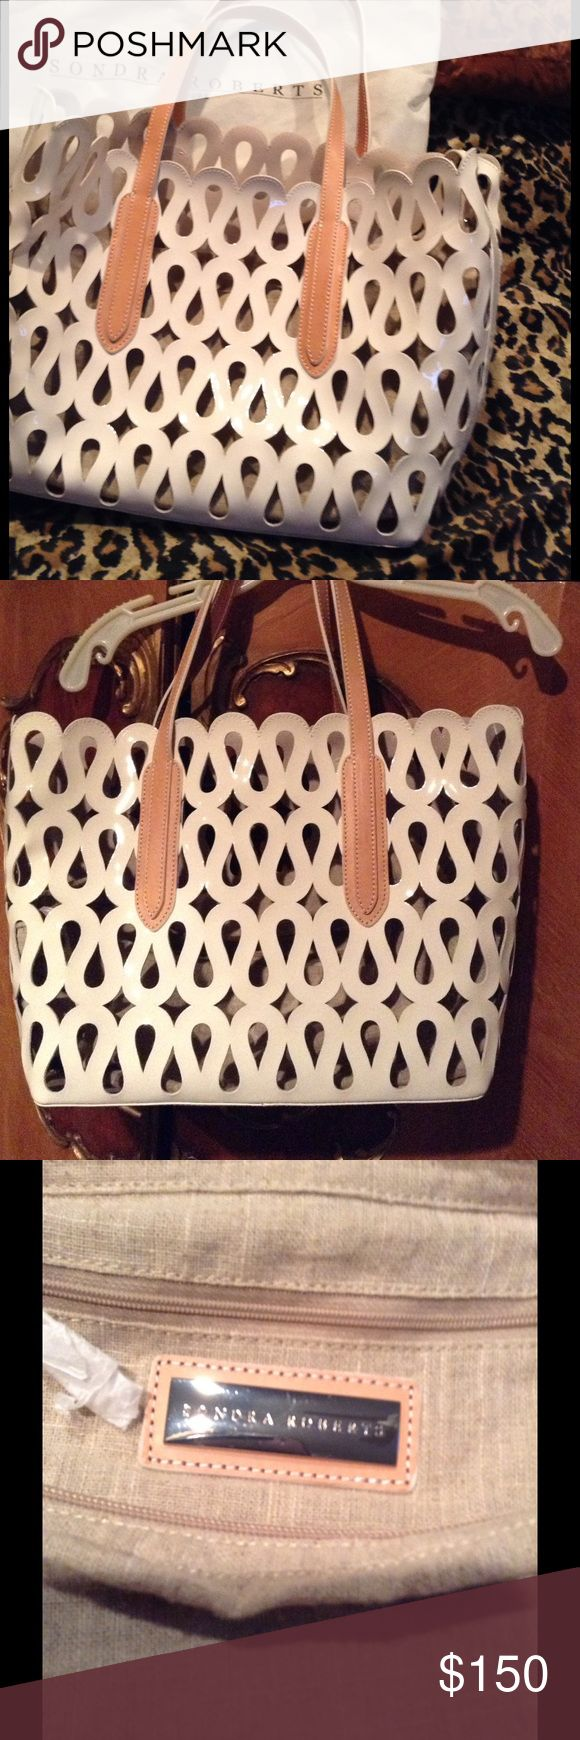 🎉 CLEARANCE 🎉 Sondra Roberts Laser Cut Tote A cut above. Enhance any outfit with the addition of this glossy patent leather tote. Laser cut detailing shows off the chic canvas look lining. Laser cut detail around entire purse, inside lining visible with canvas look, zip top closure body of purse is patent leather.  Bottom of purse is gorgeous with for metal feet and brown leather decoration around them.  Purse has beautiful tan leather straps.  Comes with original dust bag. Sondra Roberts…